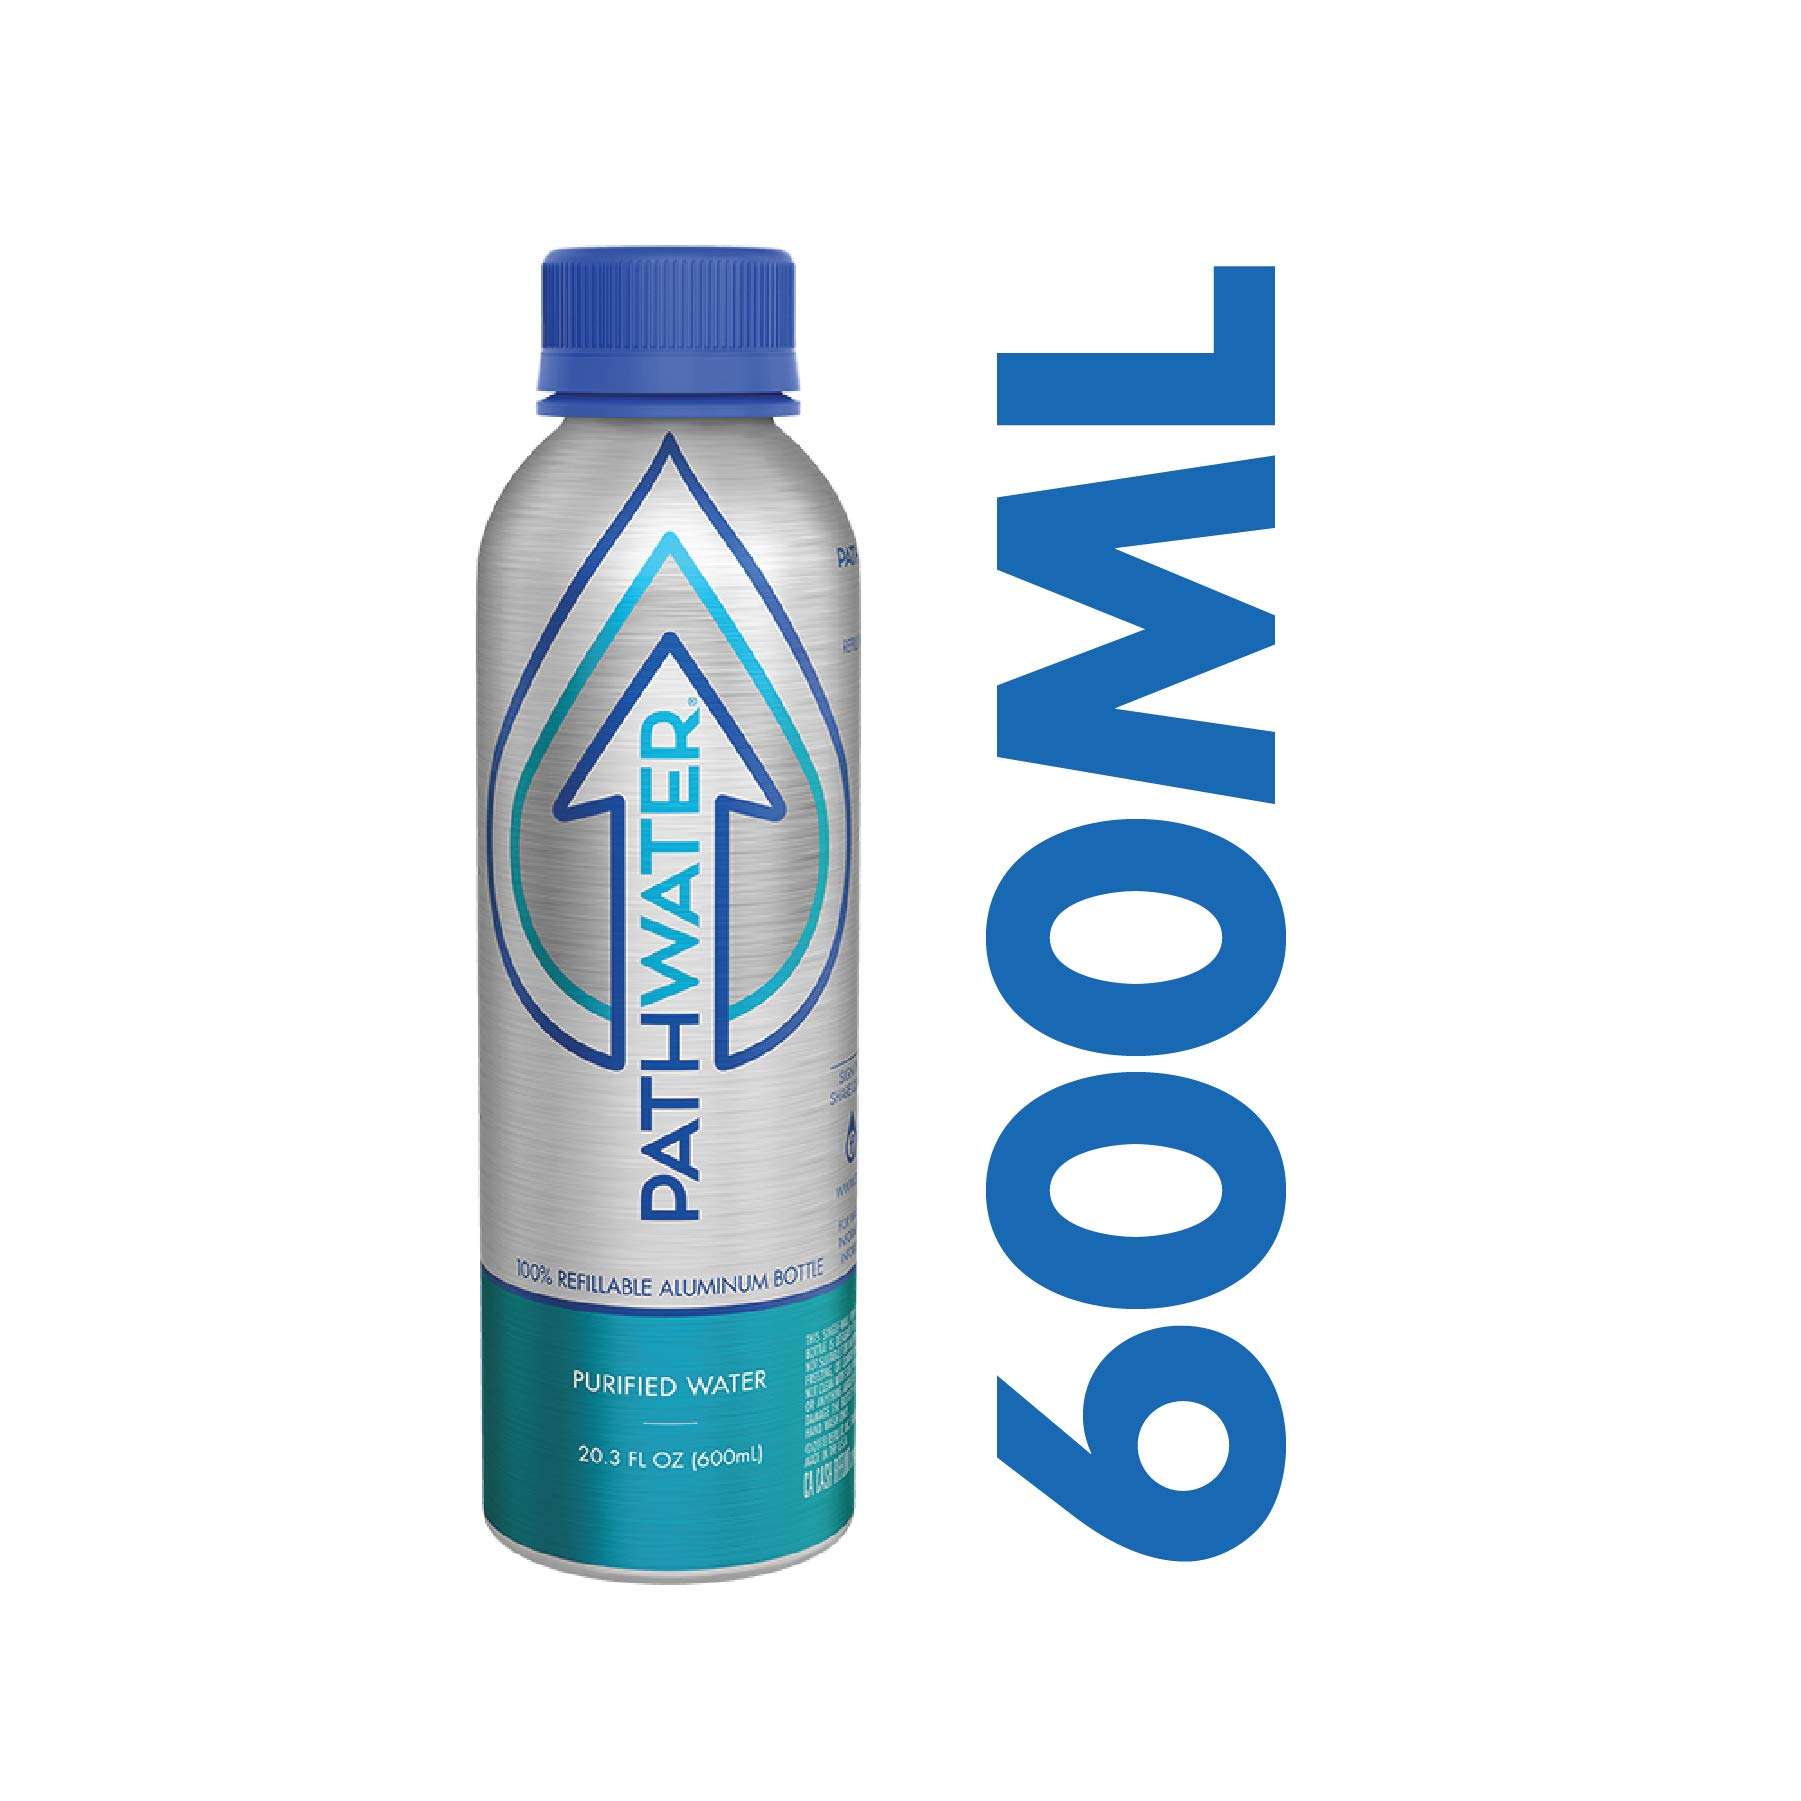 PATHWATER Purified Flouride Free Water in Eco-Friendly, Sustainable BPA Free Reusable Recyclable Durable Light Weight Leak Proof Sleek Aluminum Bottle (600 mL, 20 Ounces, Single Bottle)